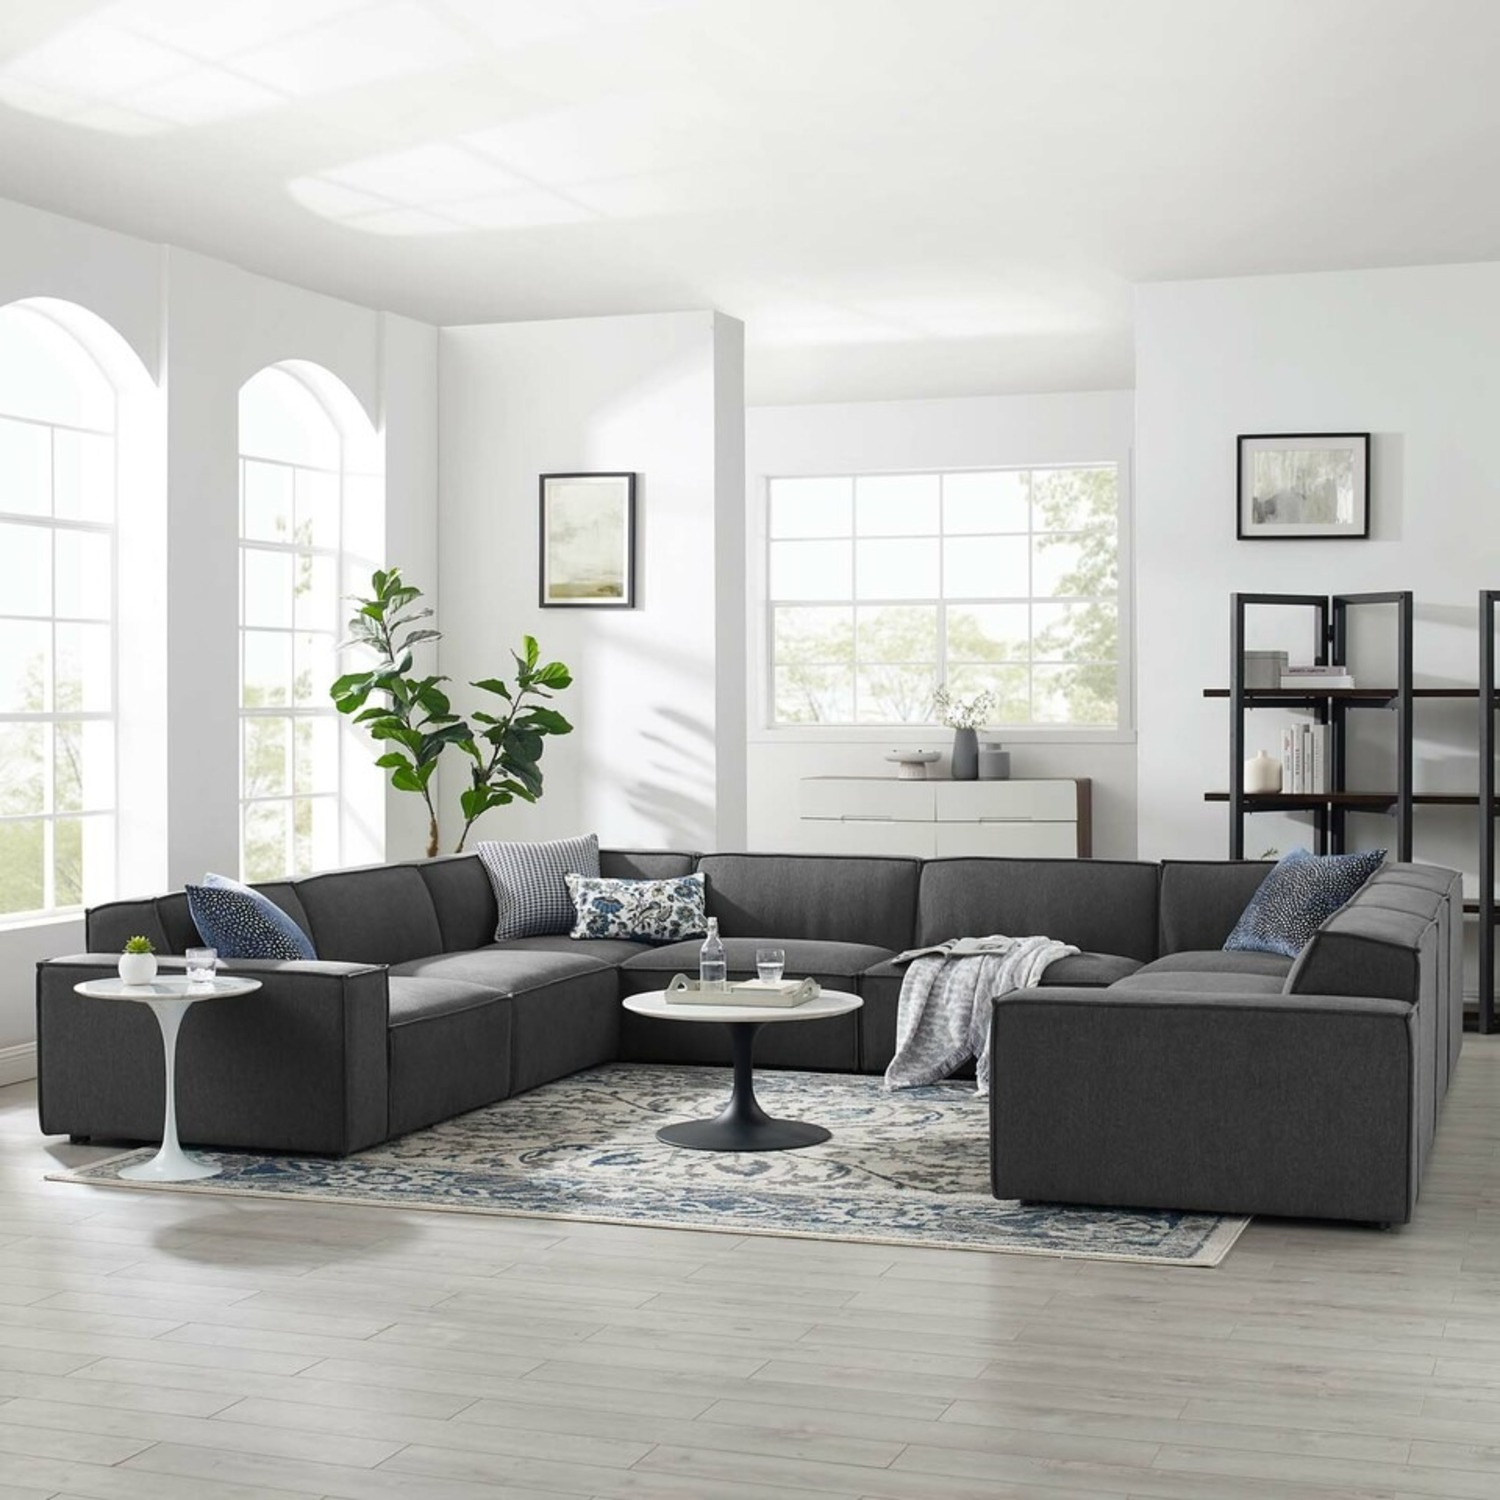 8-Piece Sectional Sofa In Charcoal Fabric Finish - image-9